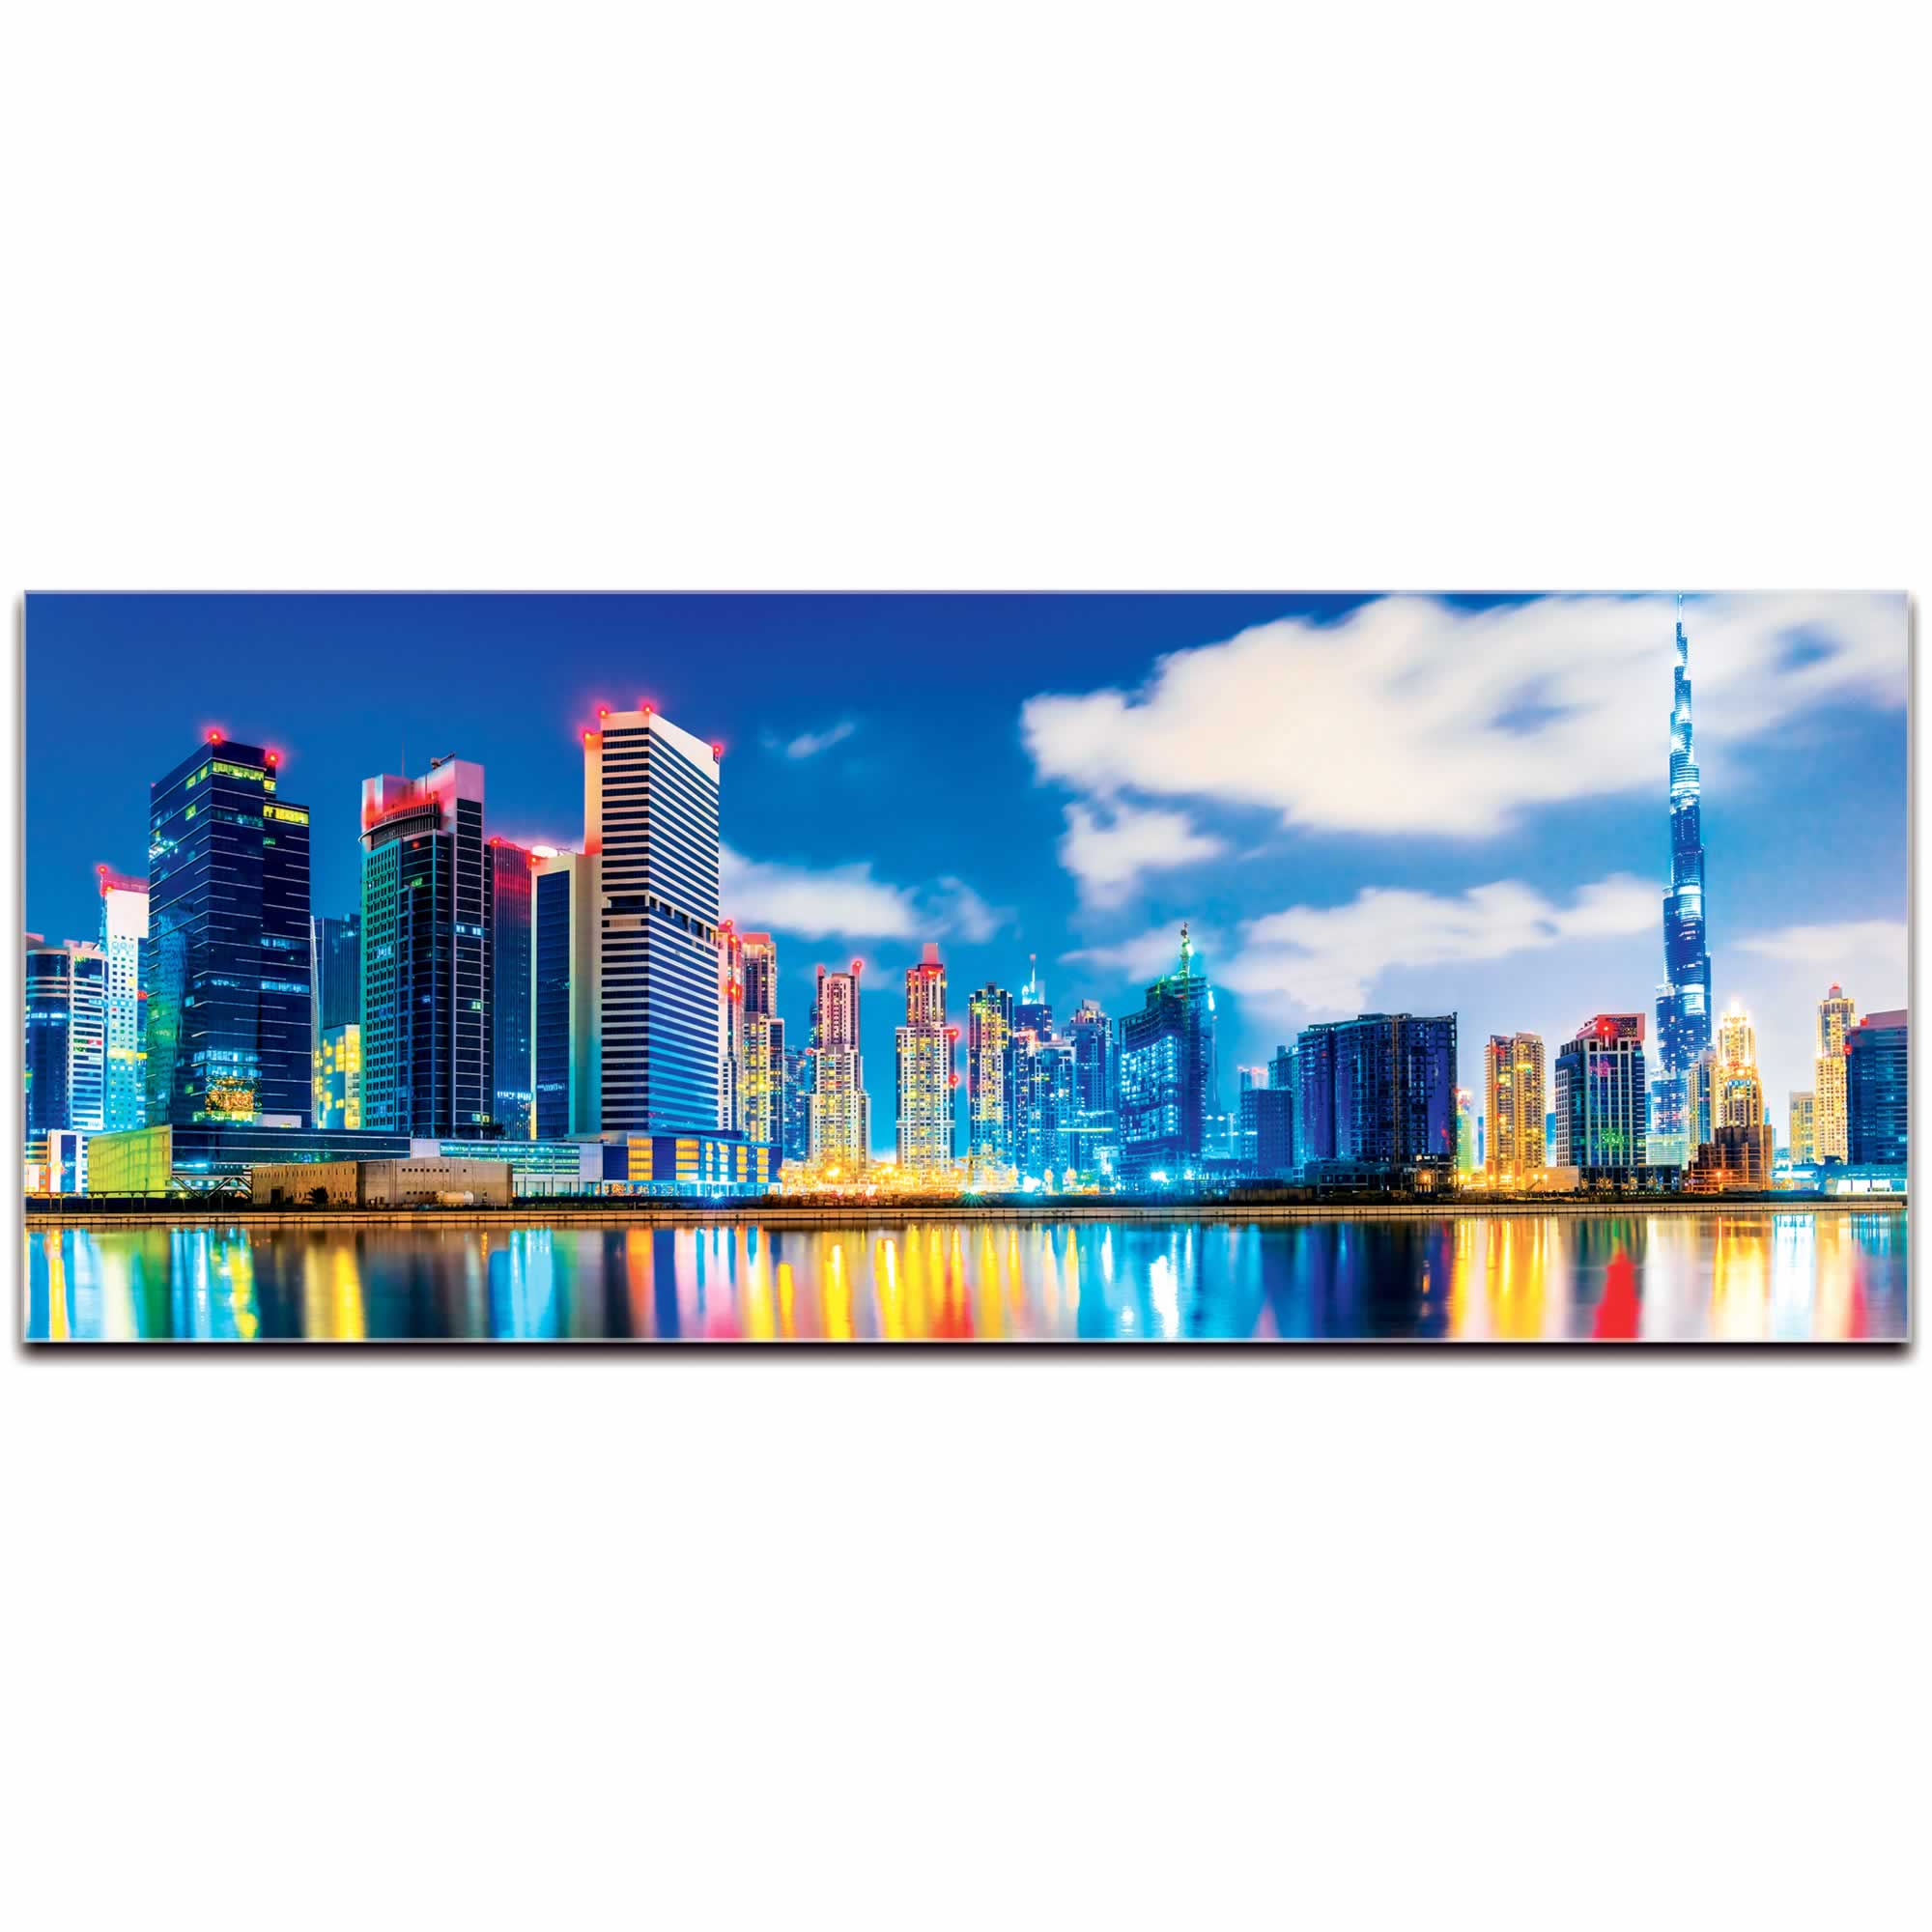 Dubai City Skyline At Night - Urban Modern Art, Designer Home Decor, Cityscape Wall Artwork, Trendy Contemporary Art